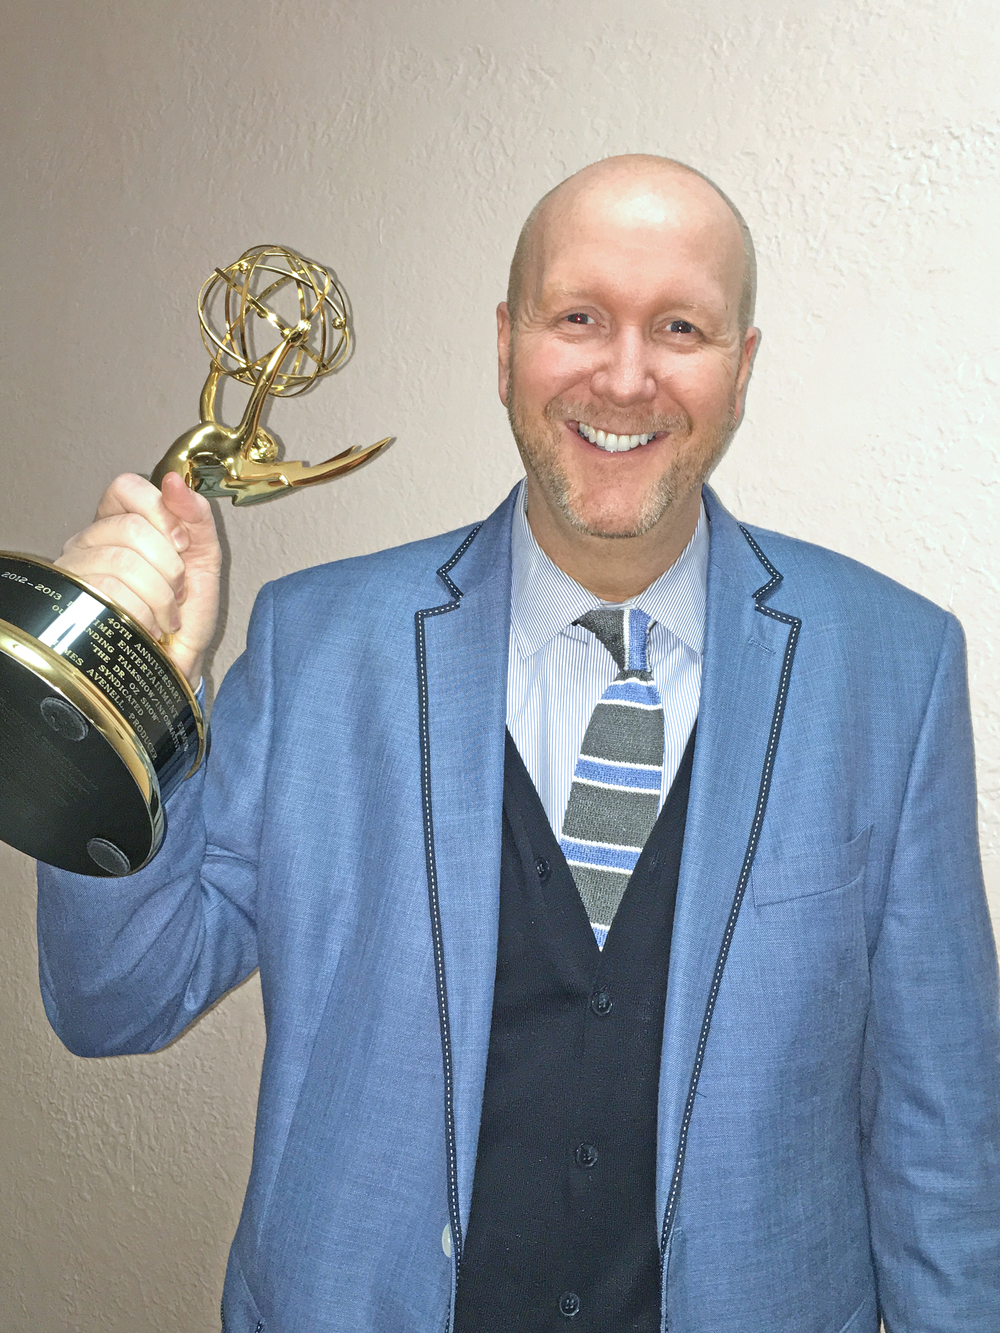 James and his Emmy!